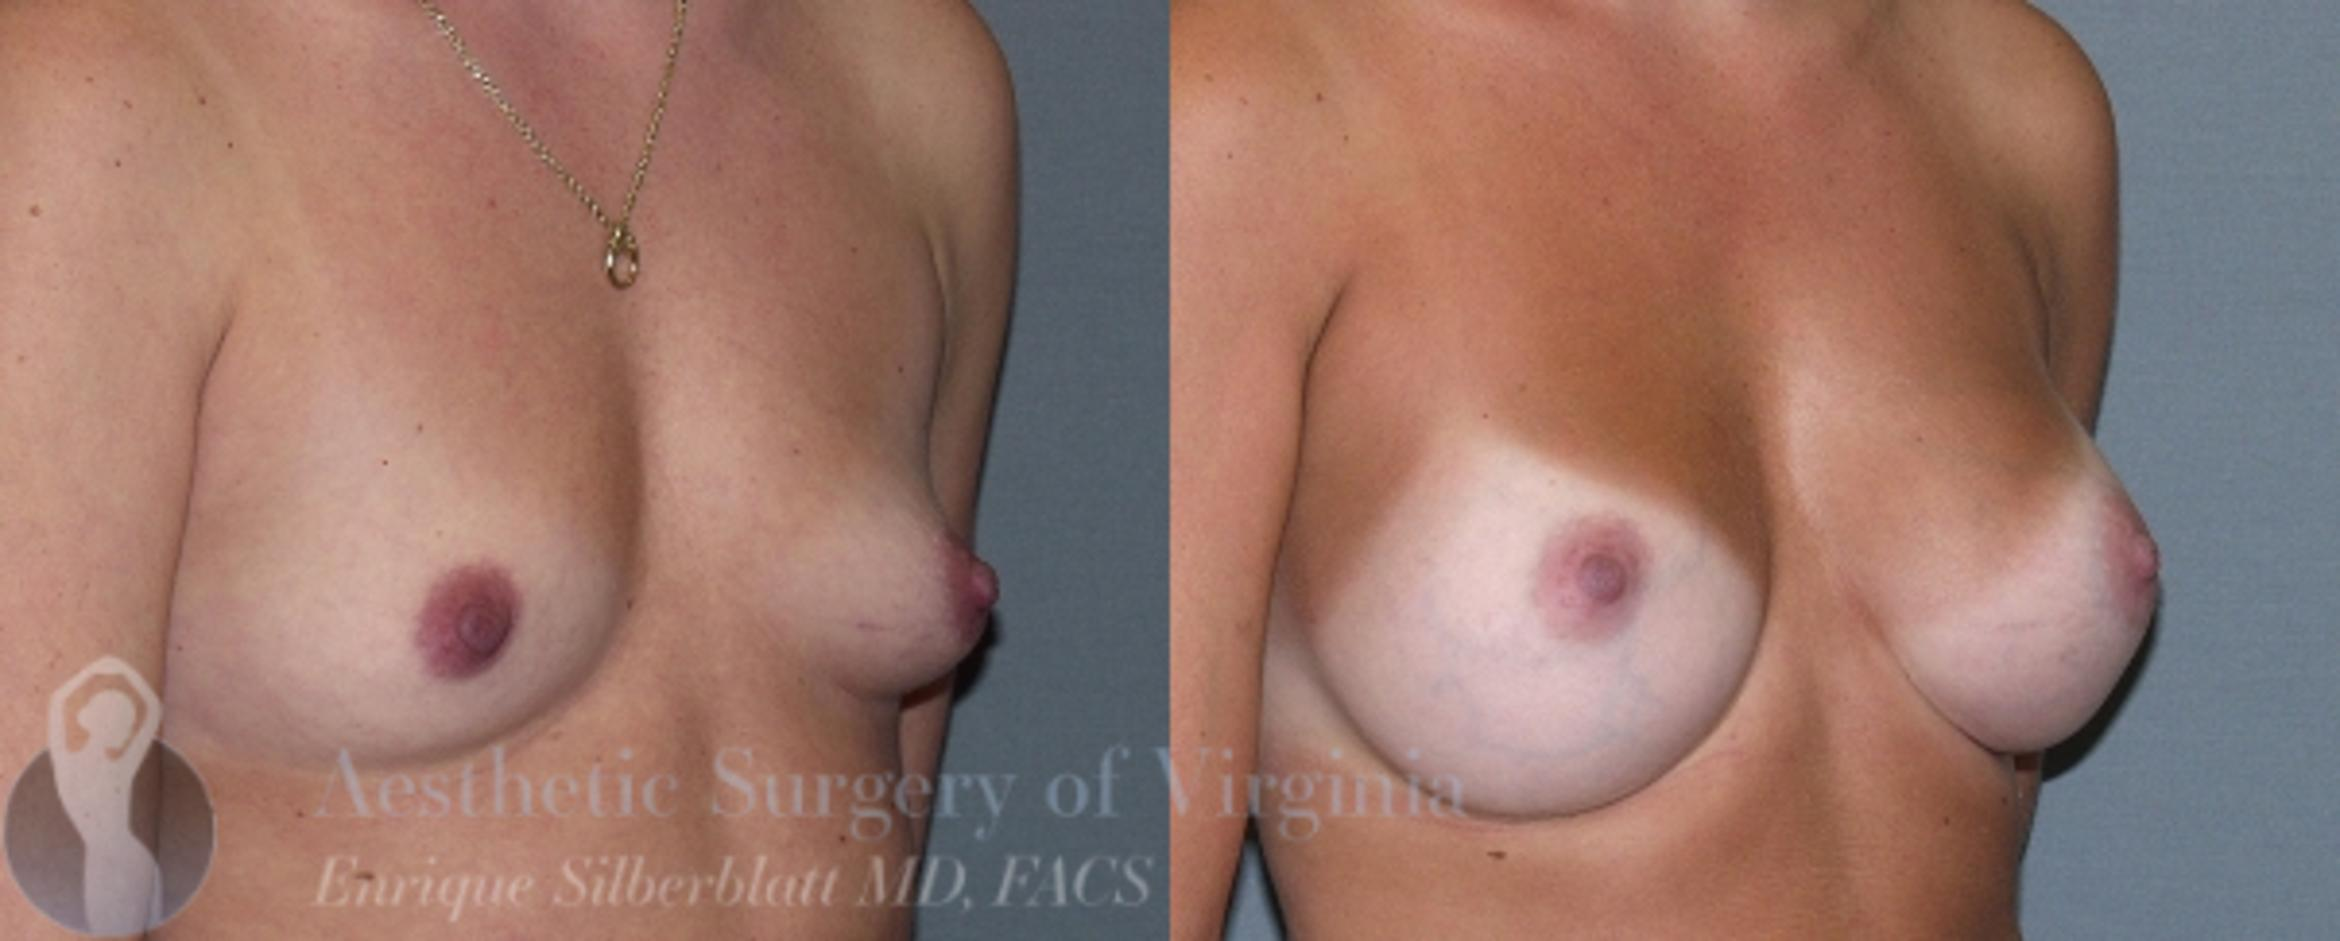 Breast Augmentation Case 6 Before & After View #4 | Roanoke, VA | Aesthetic Surgery of Virginia: Enrique Silberblatt, MD